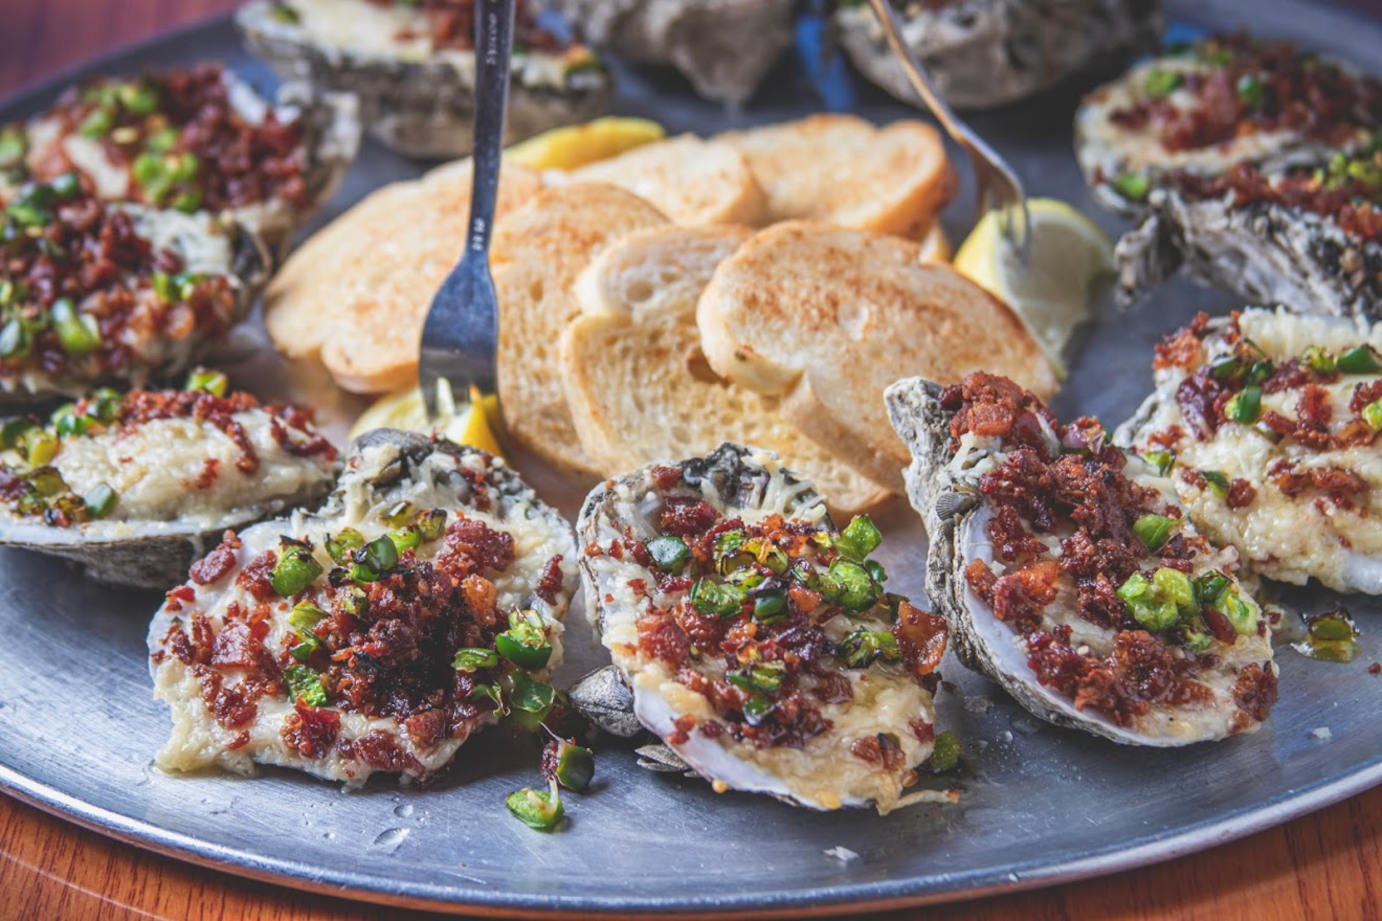 Oysters on the Half Shell topped with parmesan cheese, bacon, and jalapenos